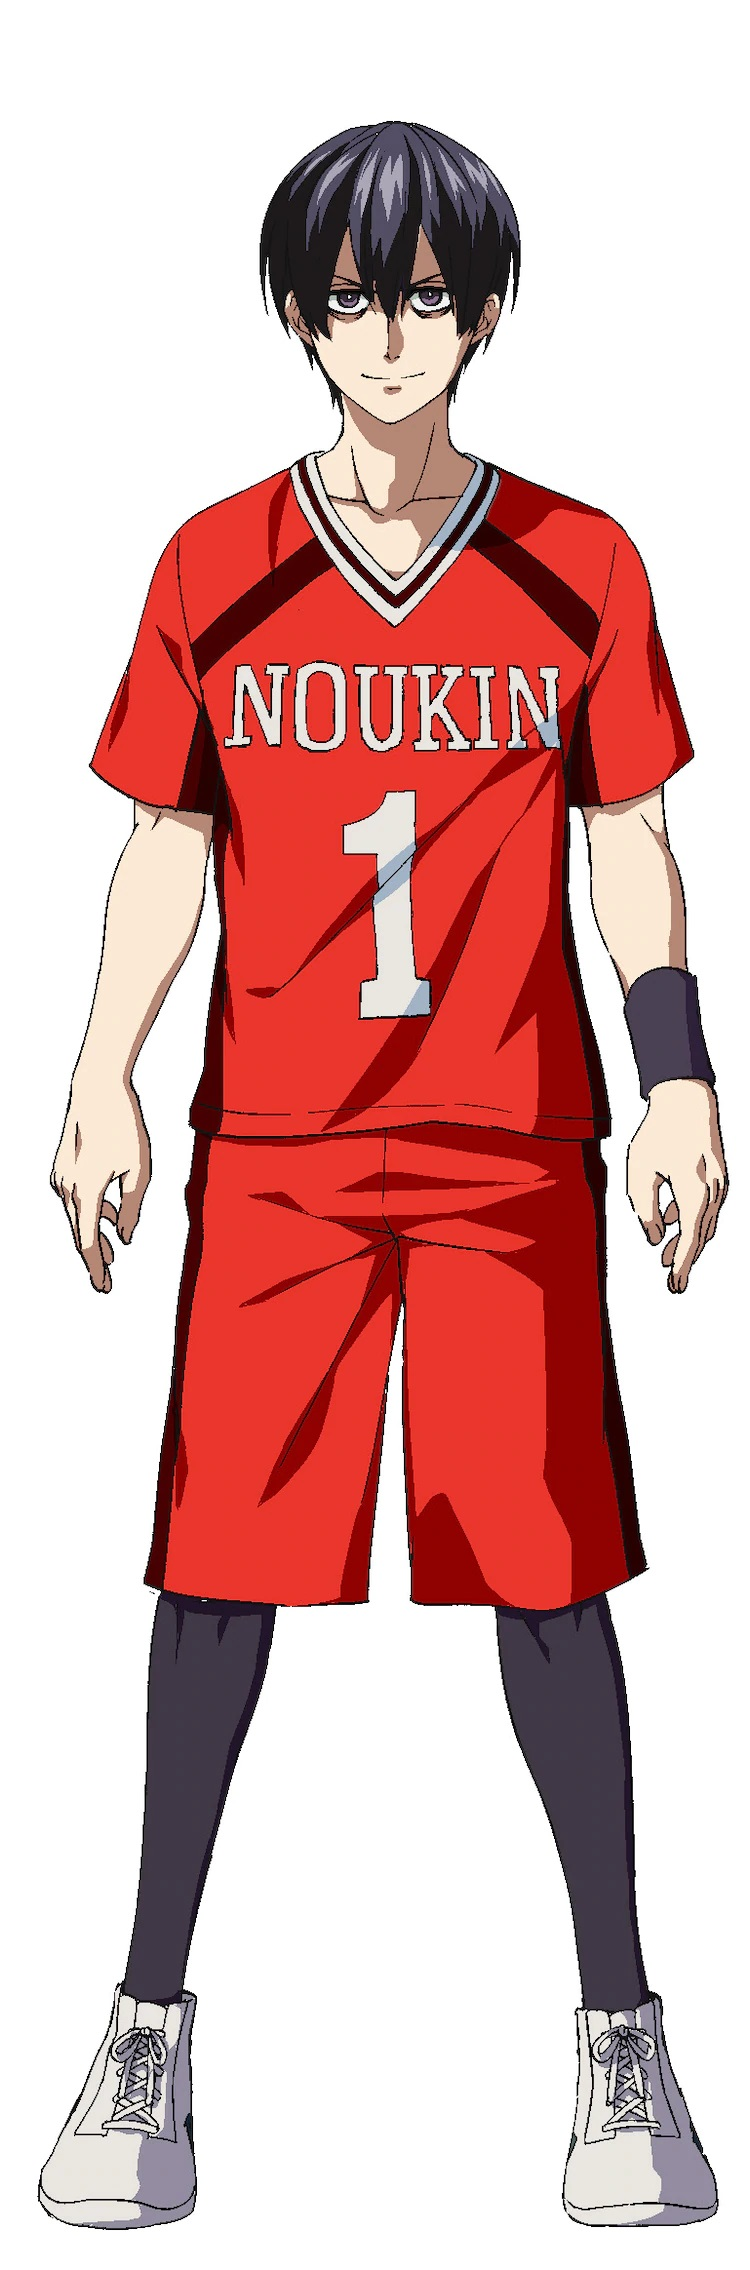 A character visual of Masato Ohjyo, one of the main characters from the upcoming Burning Kabaddi TV anime, in his kabaddi uniform. Masato has dark hair and dark eyes with dark circles under them, and he sports a fierce and determined expression.